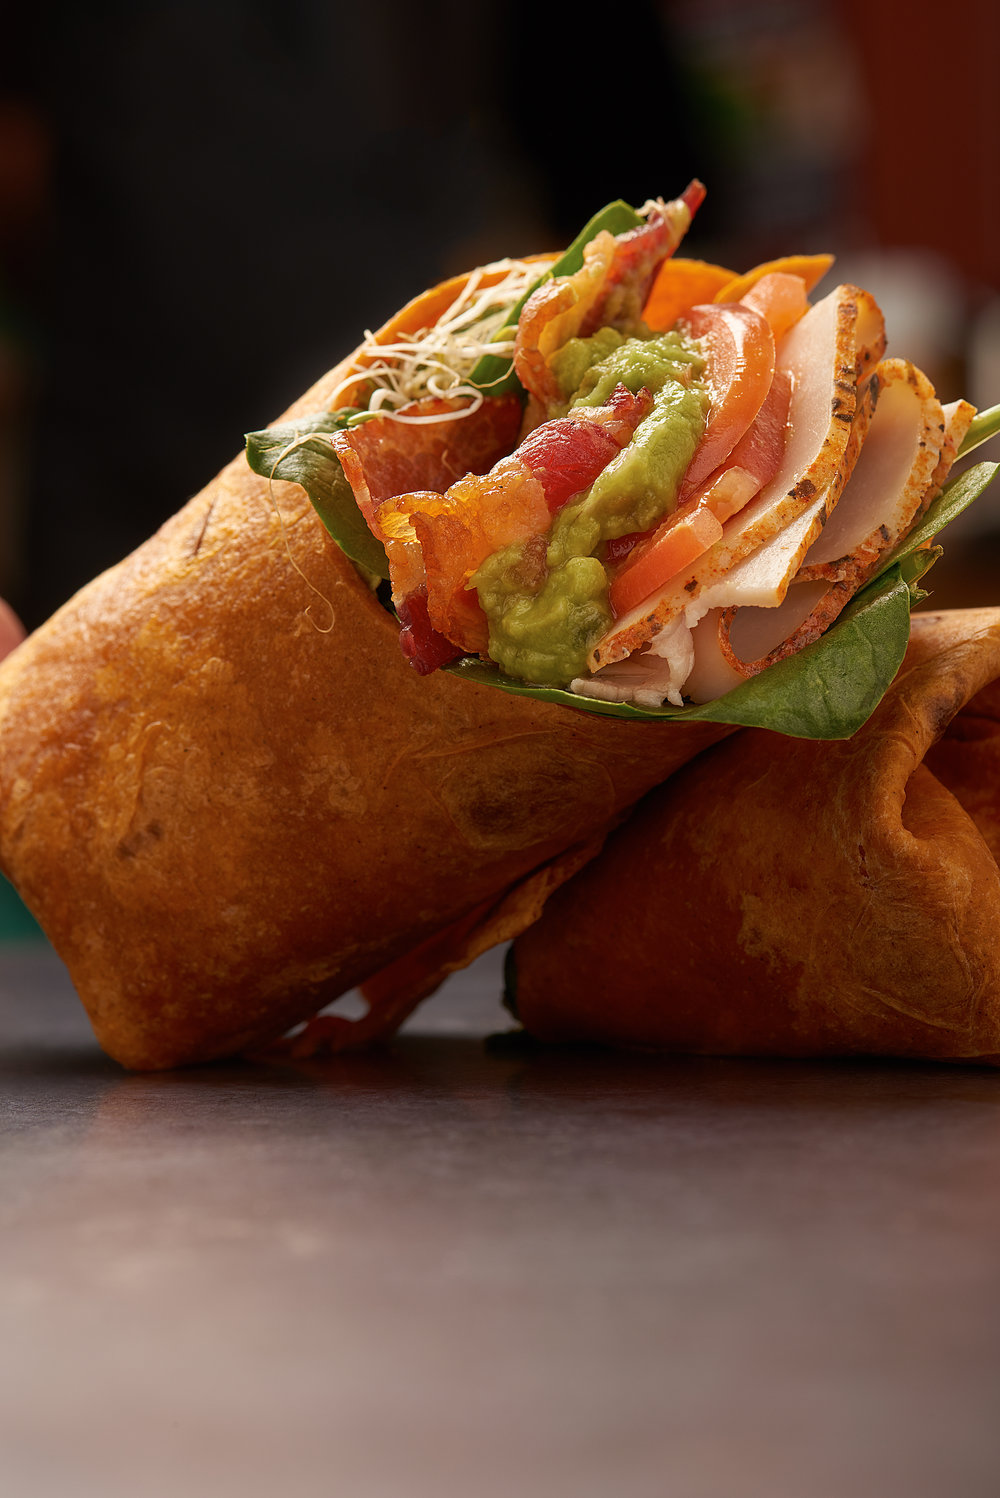 Professional food photo of a wrap made with turkey, tomato, spinach, guacamole and bacon. Commercial photography